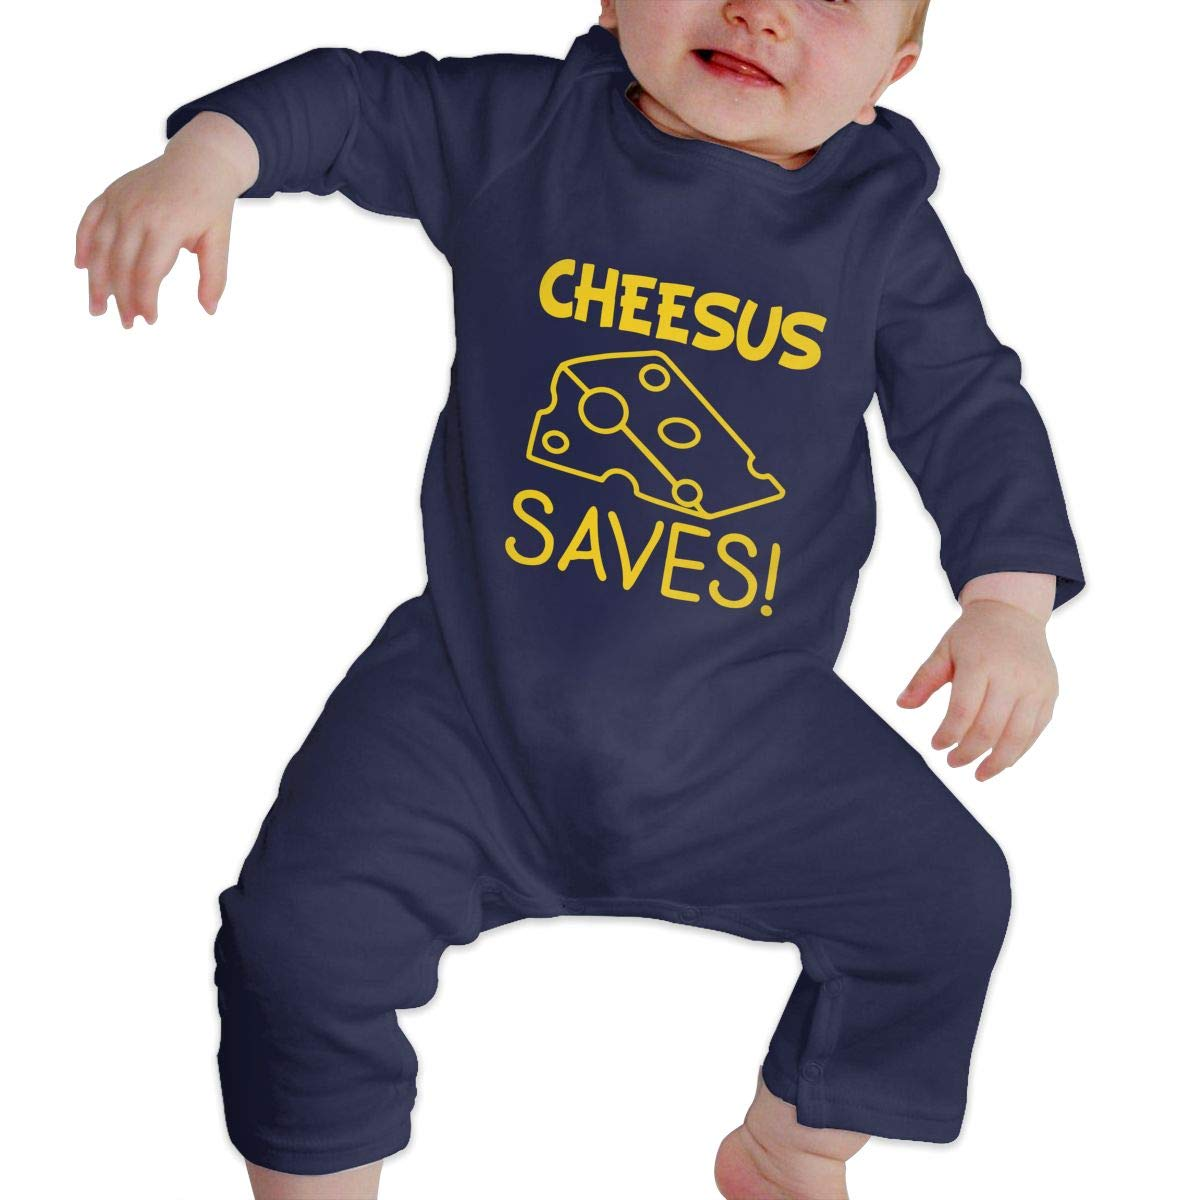 Db84UR@5p Infant Baby Girls Boys Long Sleeve Bodysuit Little Swiss Cheese Cotton Romper Outfit